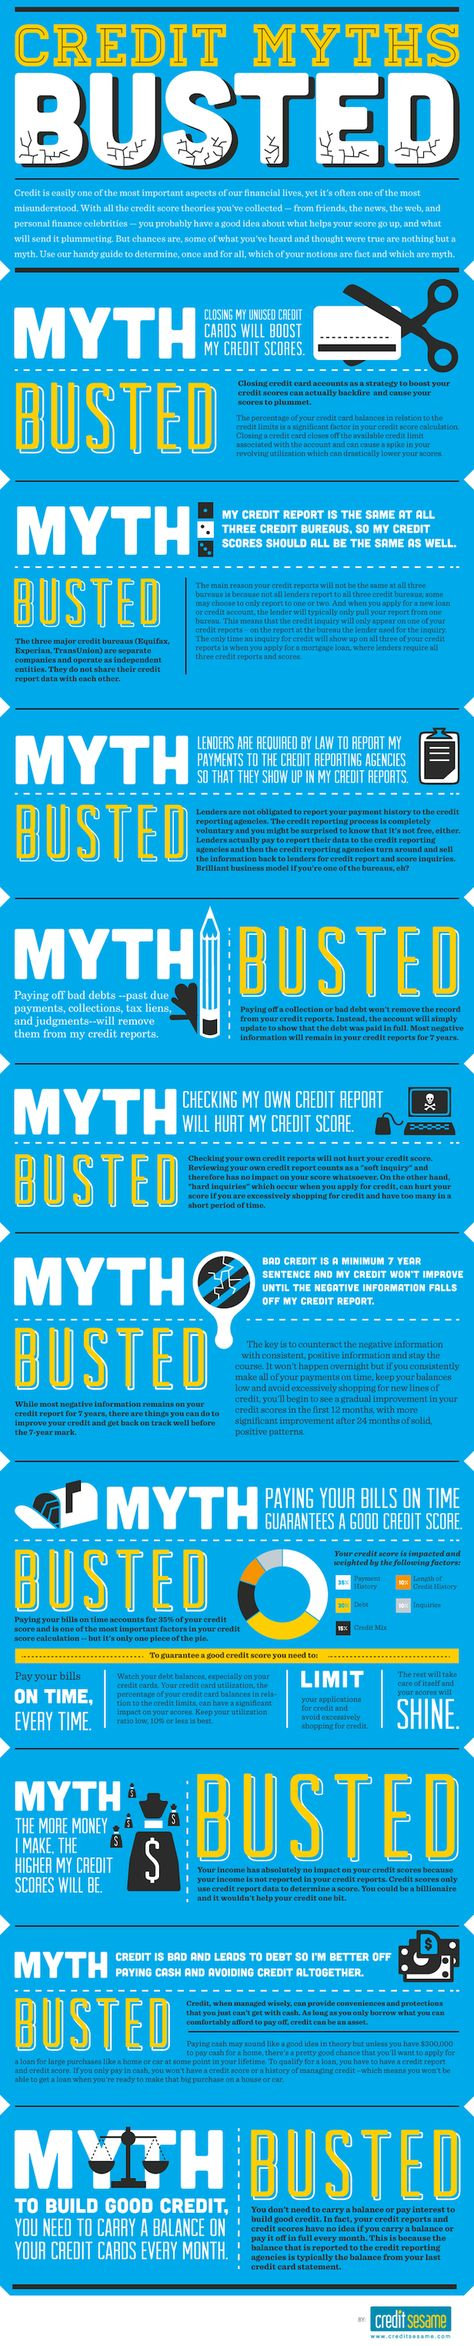 Credit Score Myths Debunked [Infographic]